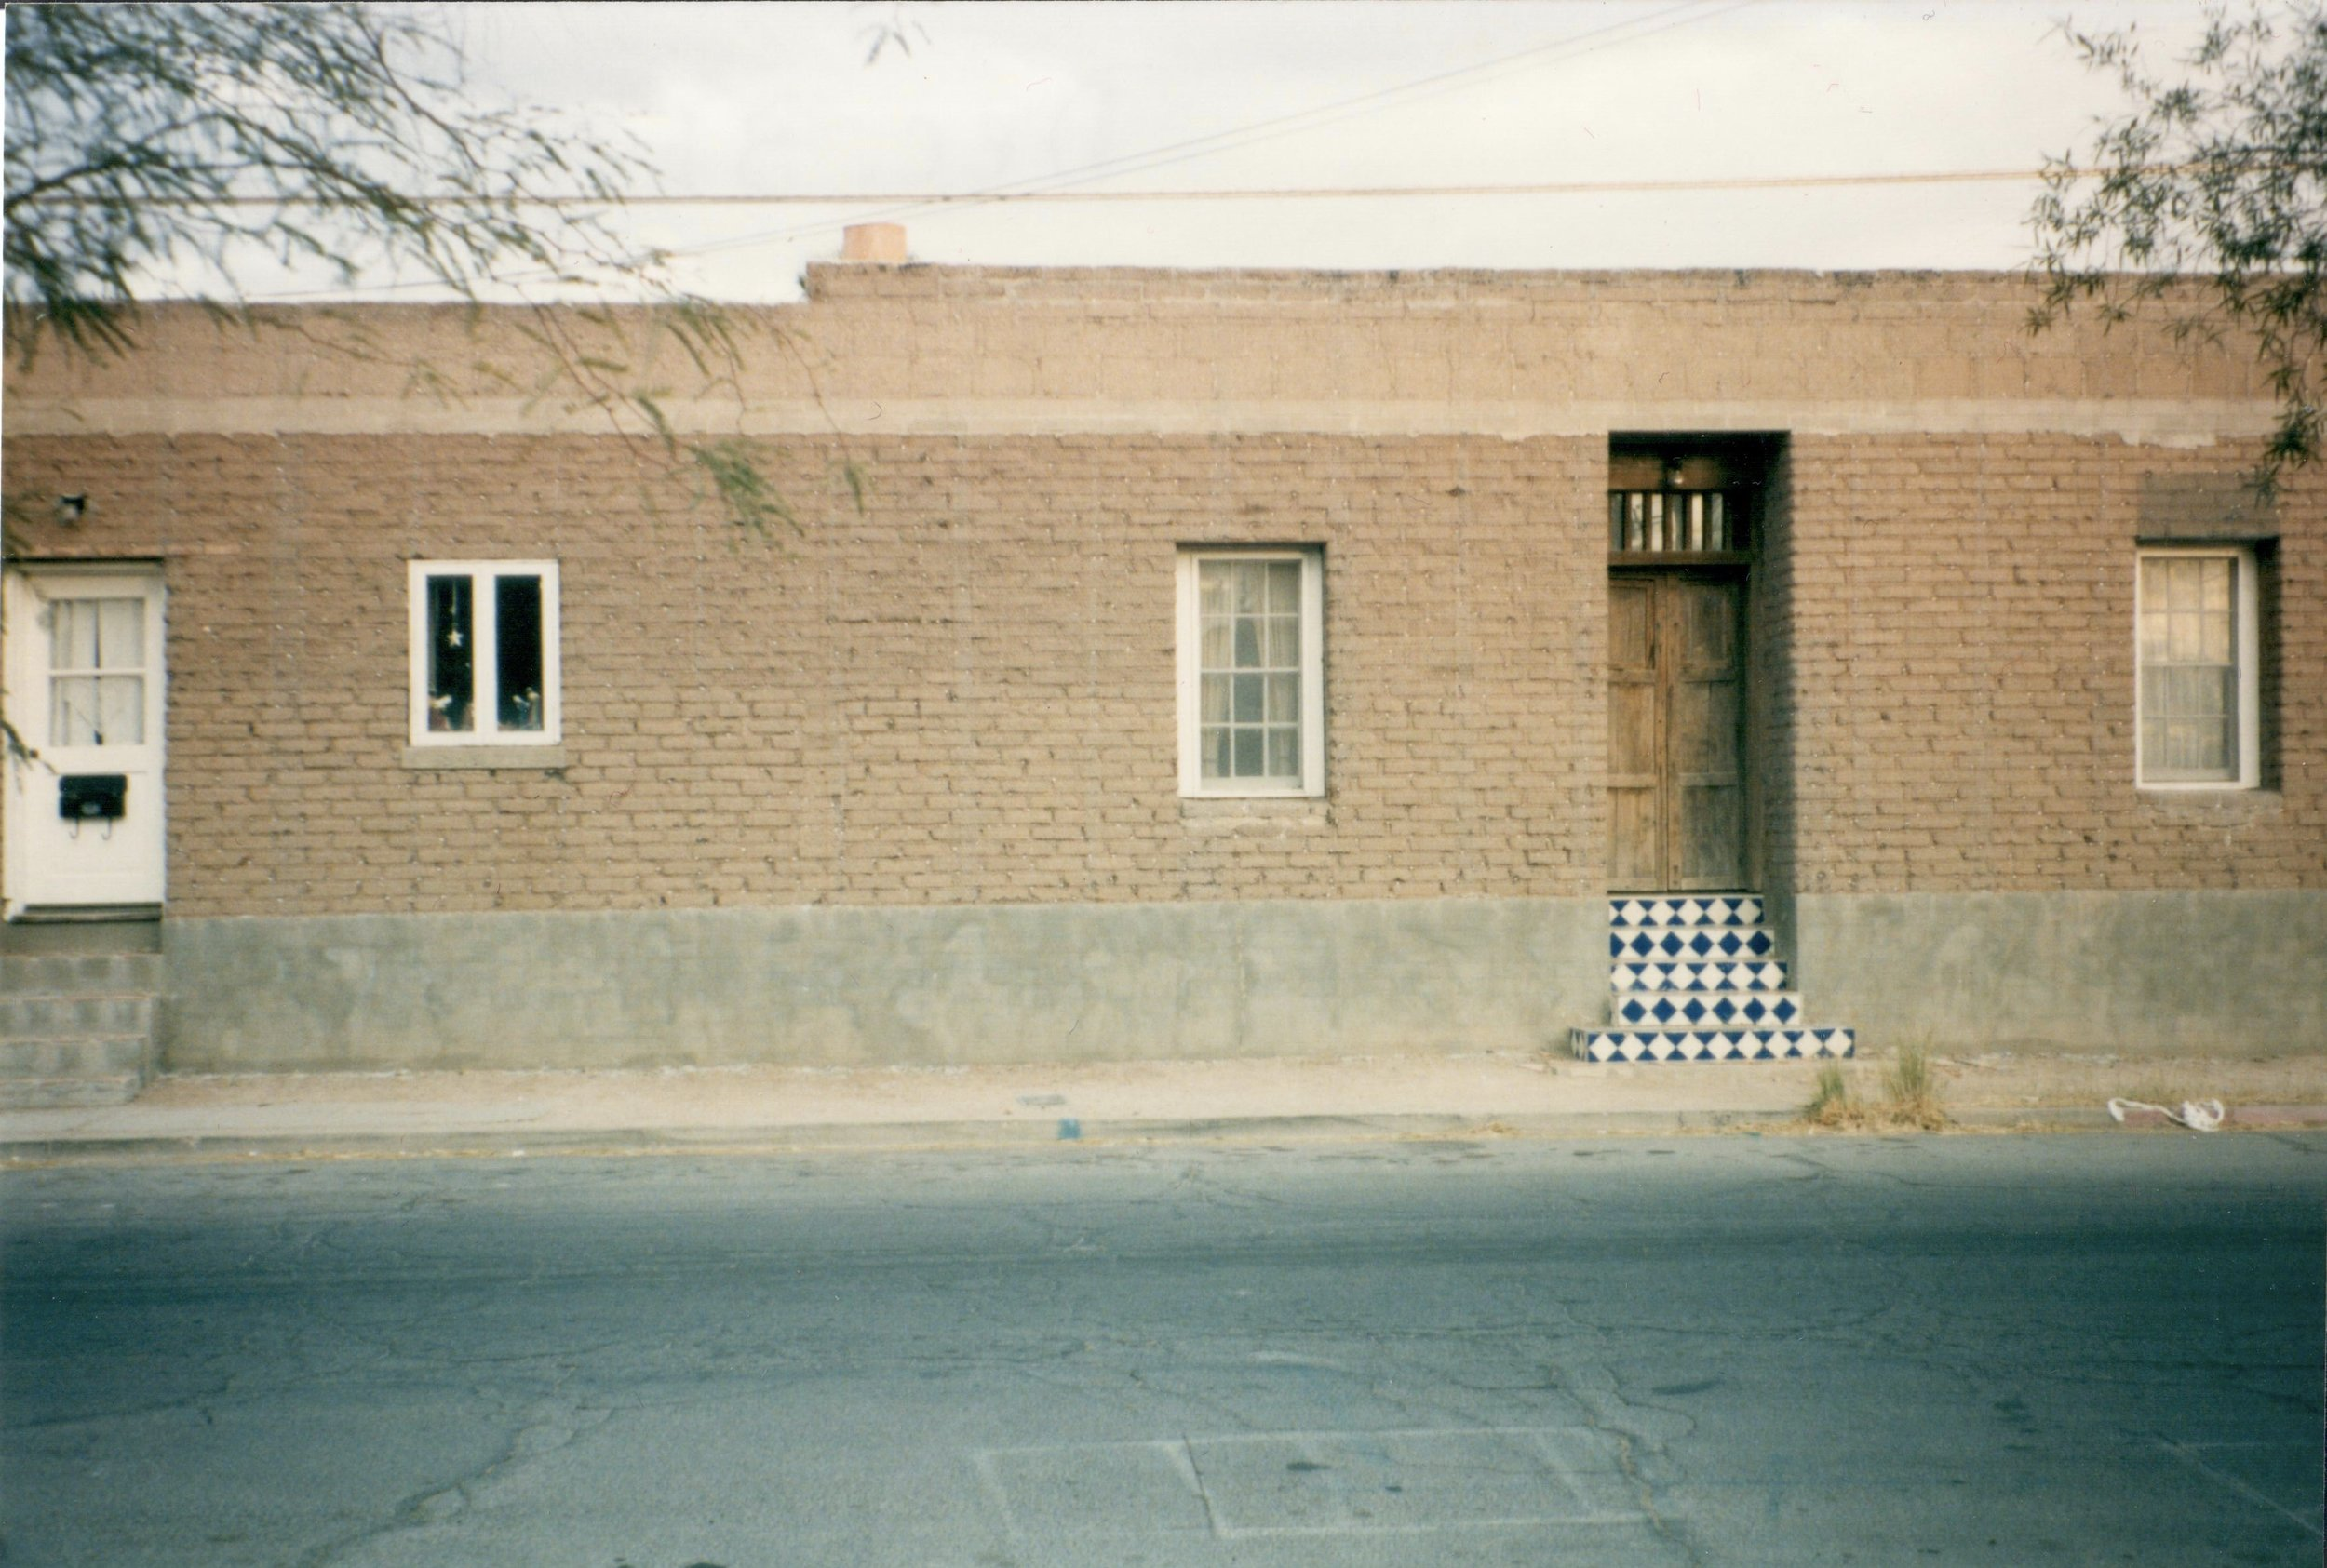 413 S. Convent, pre-plaster, on Dec. 31, 1999. This house was built in 1981.